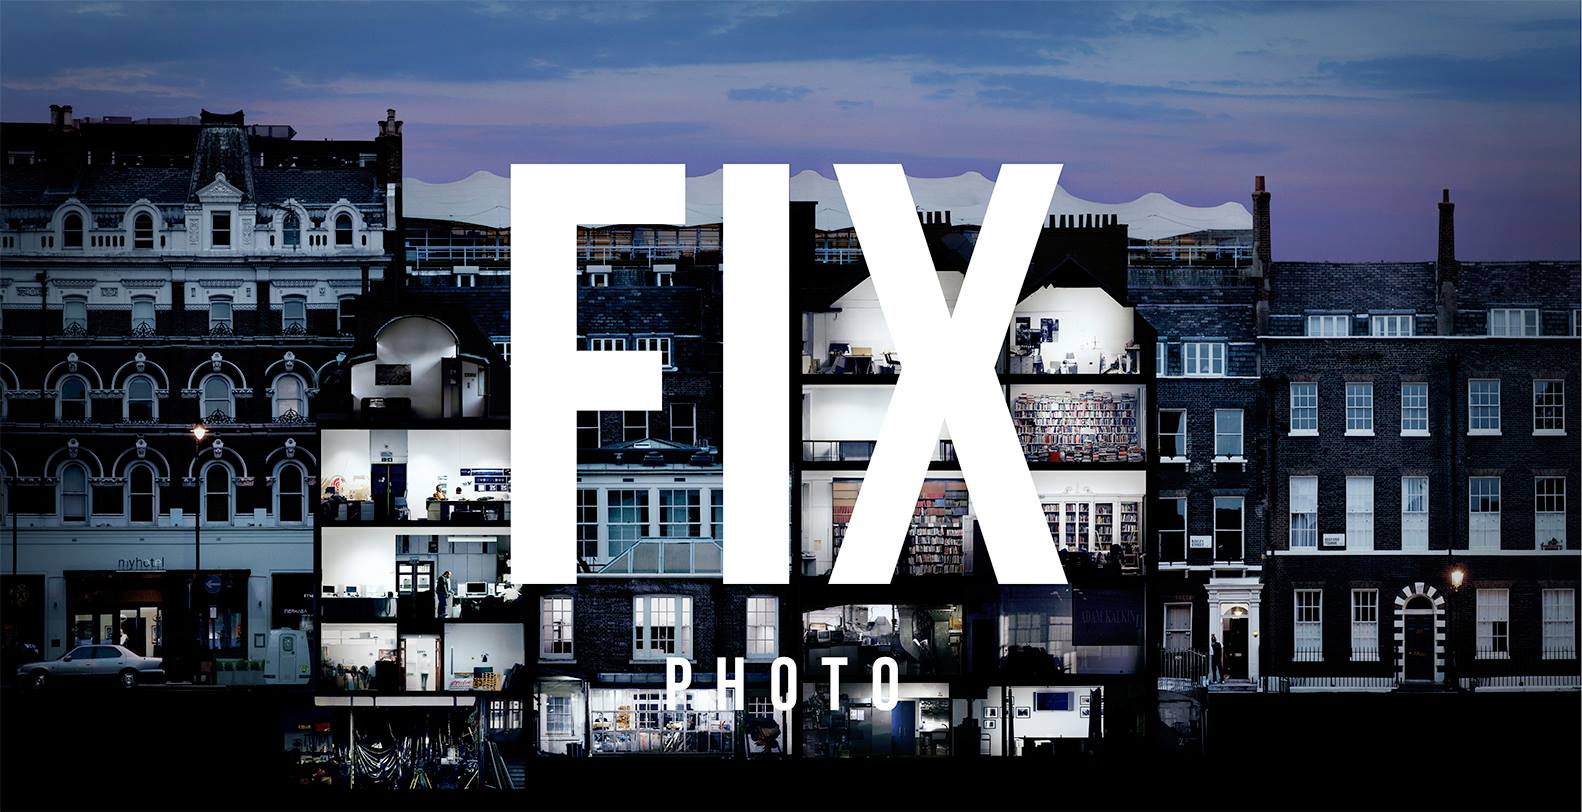 Have you visited the Fix photo festival this spring??